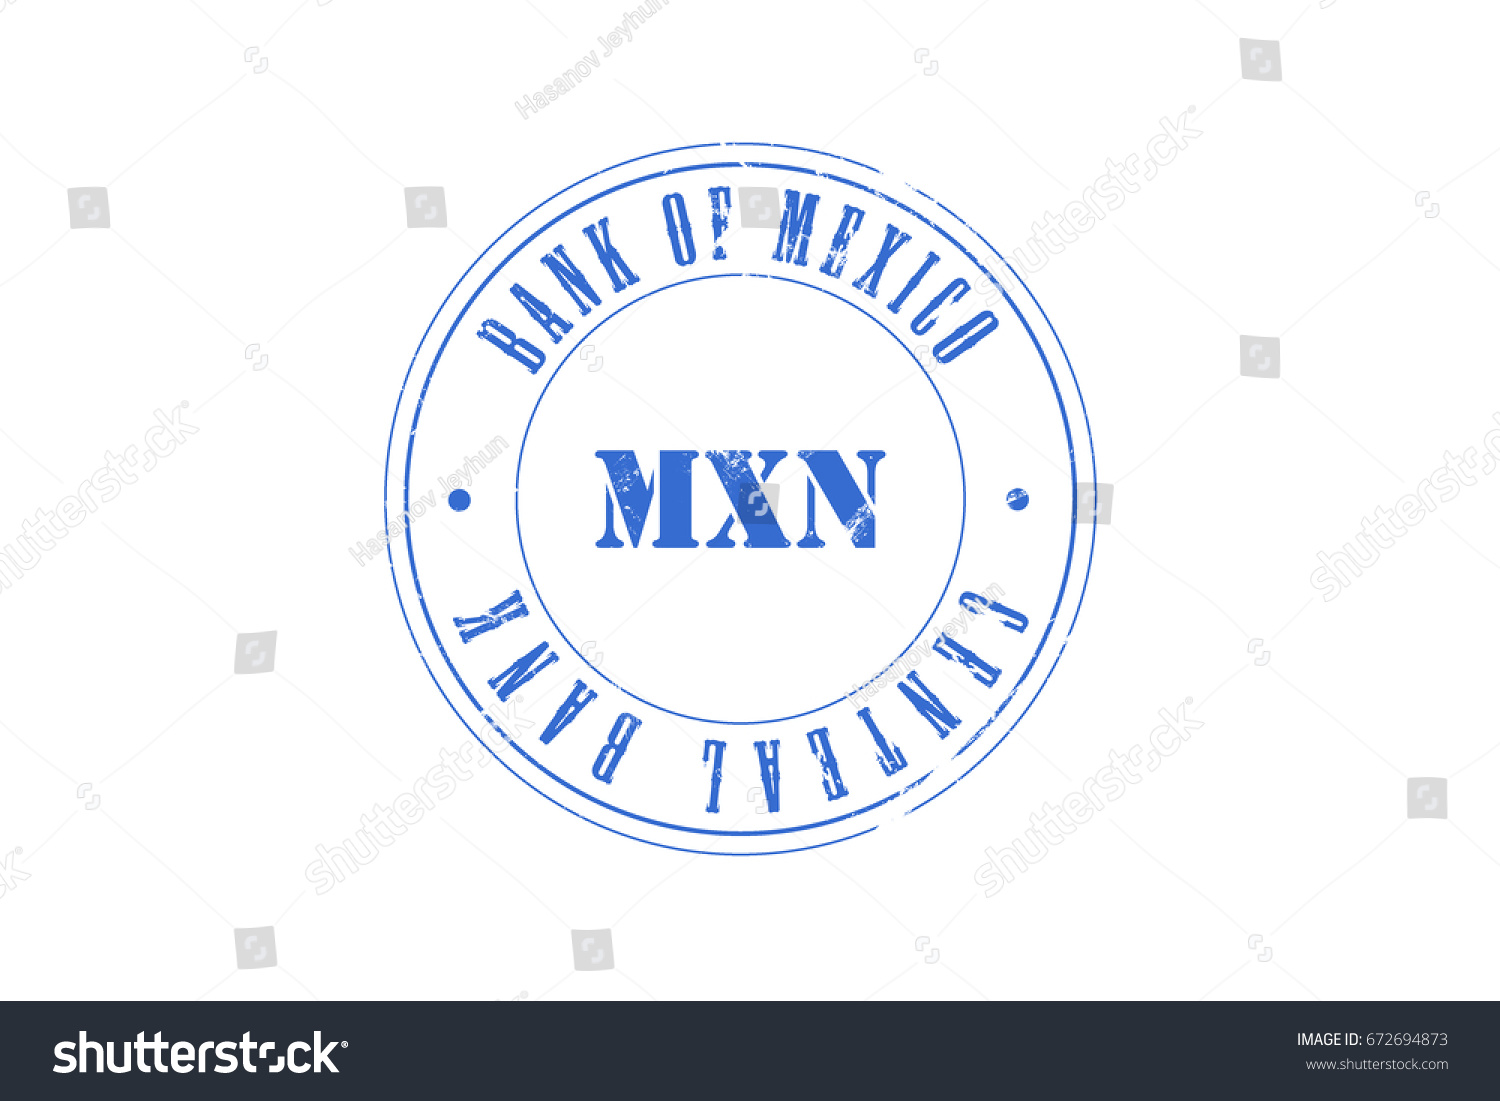 Mexican peso central bank bank mexico stock illustration 672694873 mexican peso central bank bank of mexico mxn stamp biocorpaavc